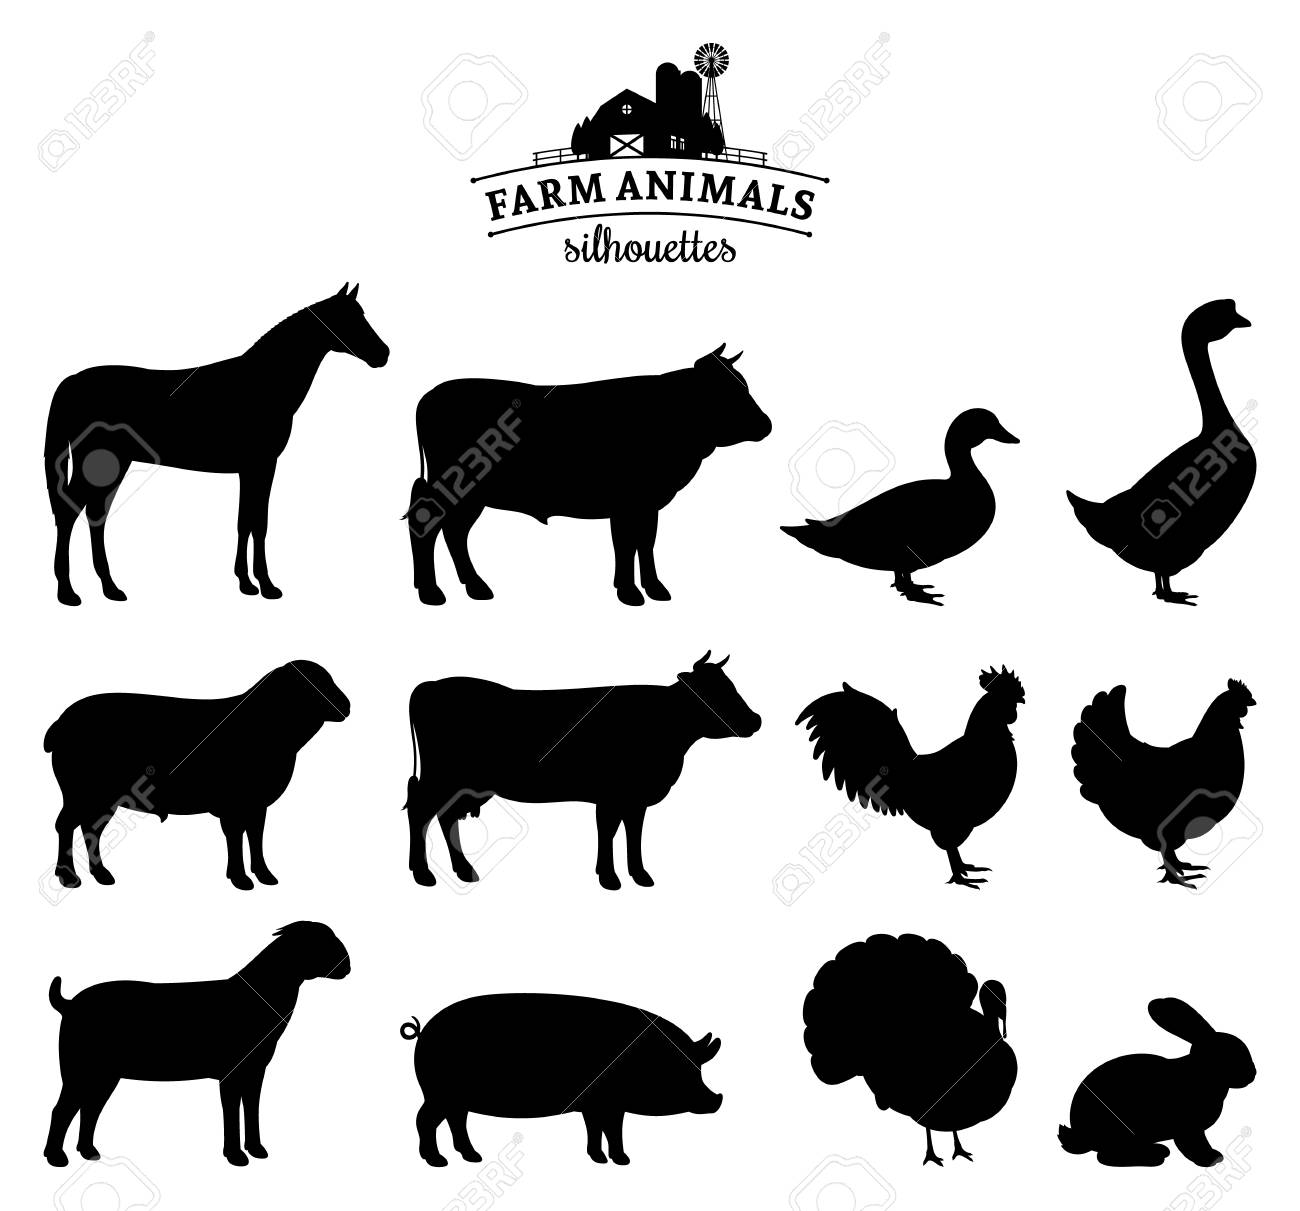 Vector farm animals silhouettes isolated on white. - 105948215